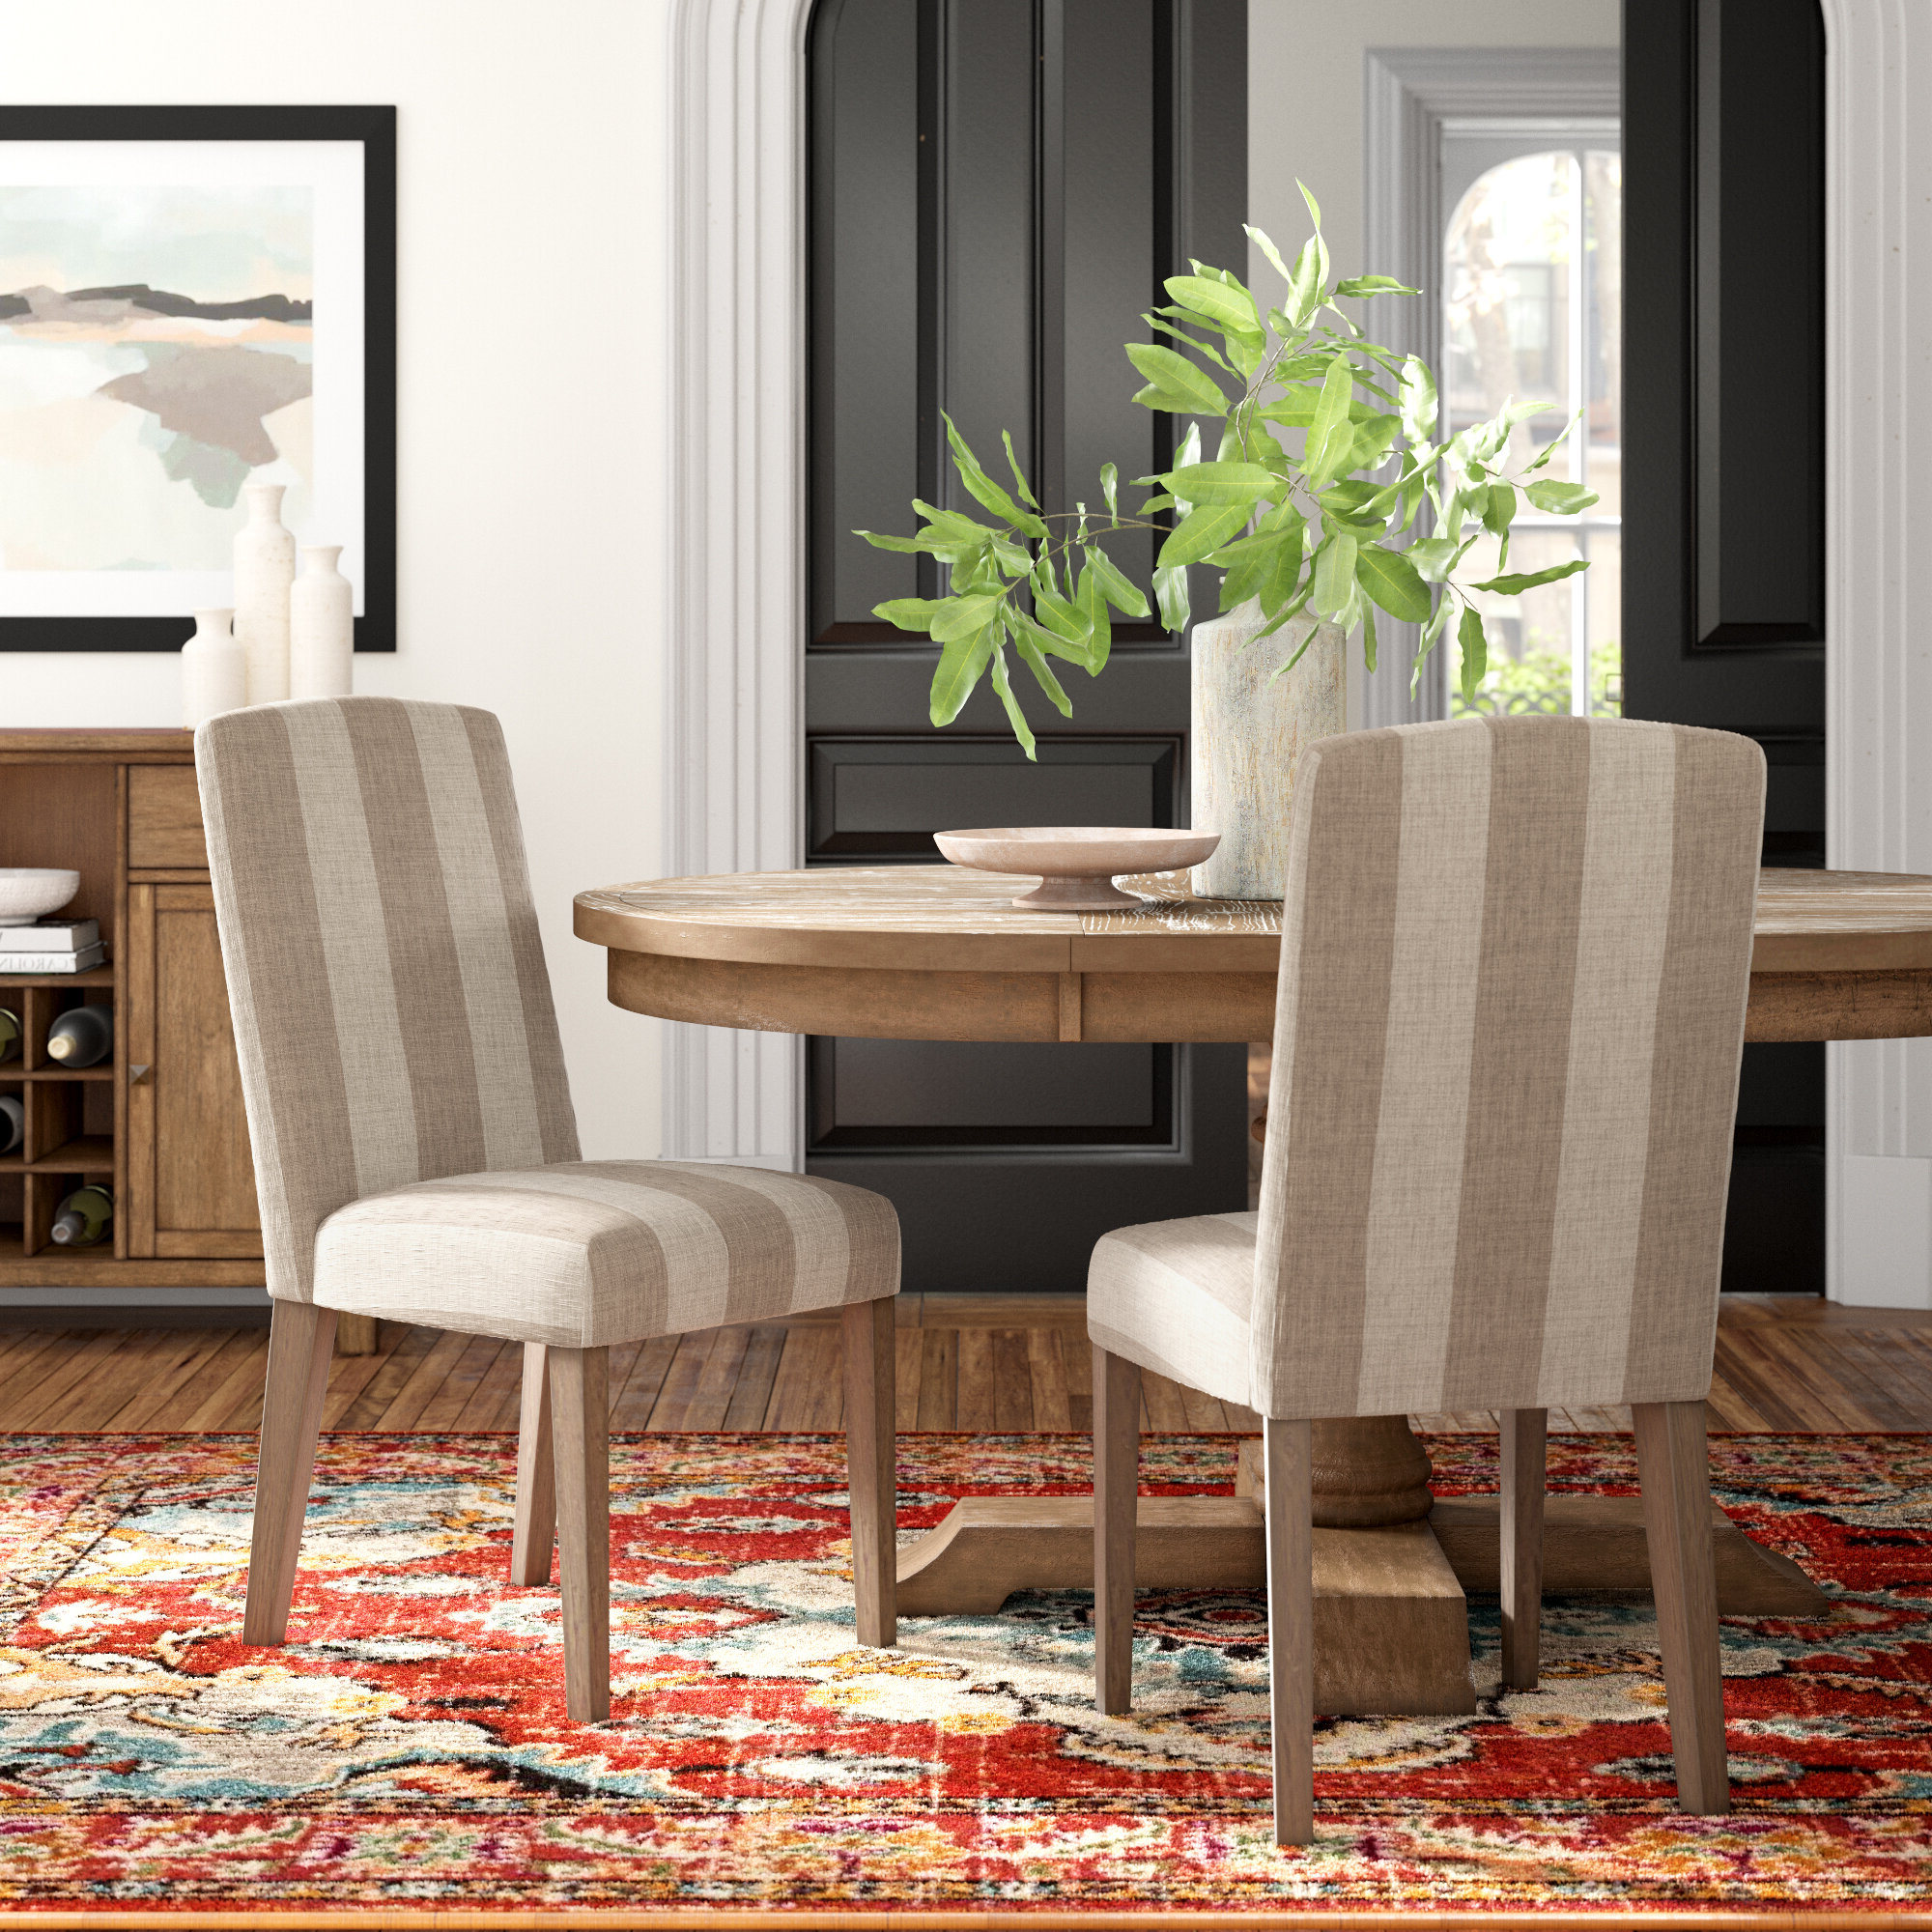 2019 Coastal Dining Chairs (View 7 of 20)